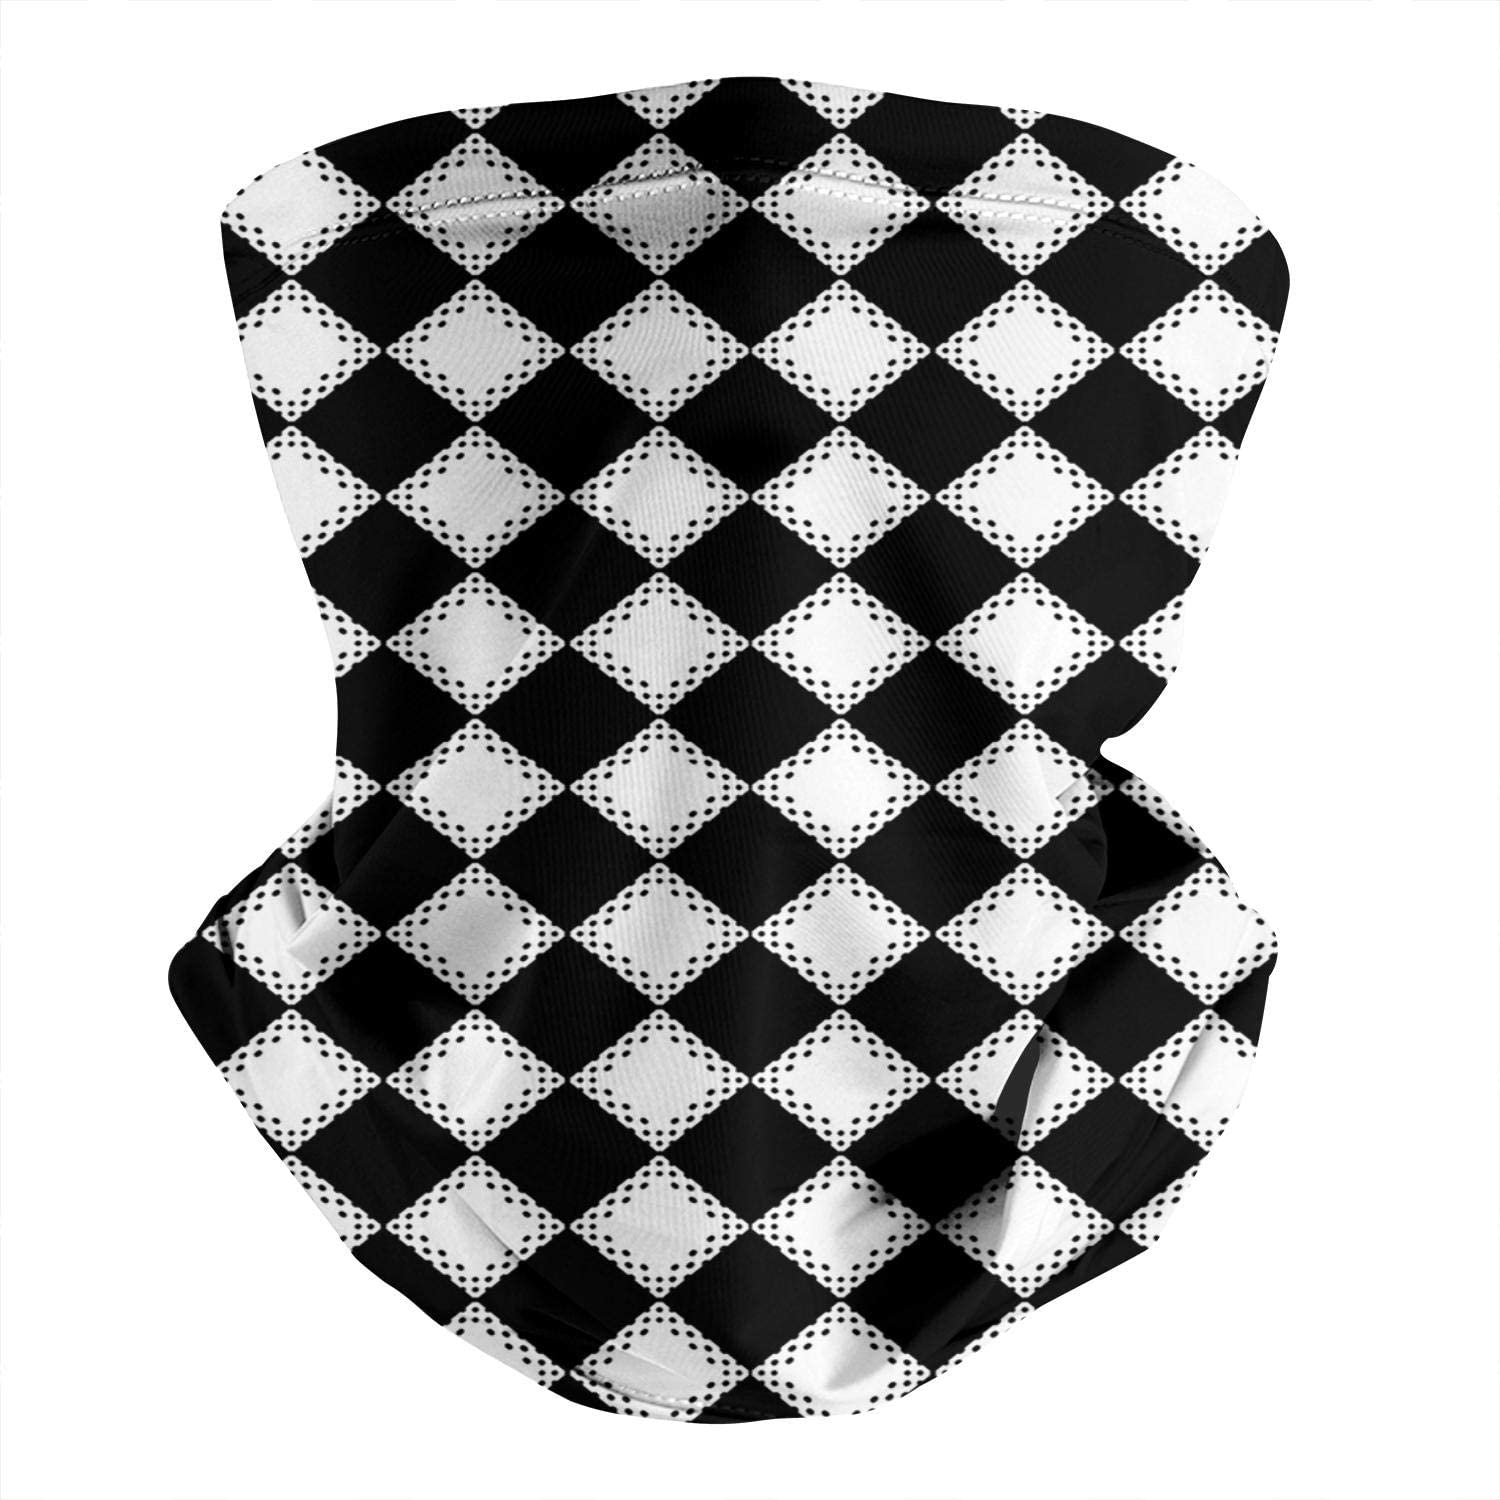 Mens Women Multifunctional Neck Gaiter Headwrap Checkerboard-abstract-leather- Unique Face Mask